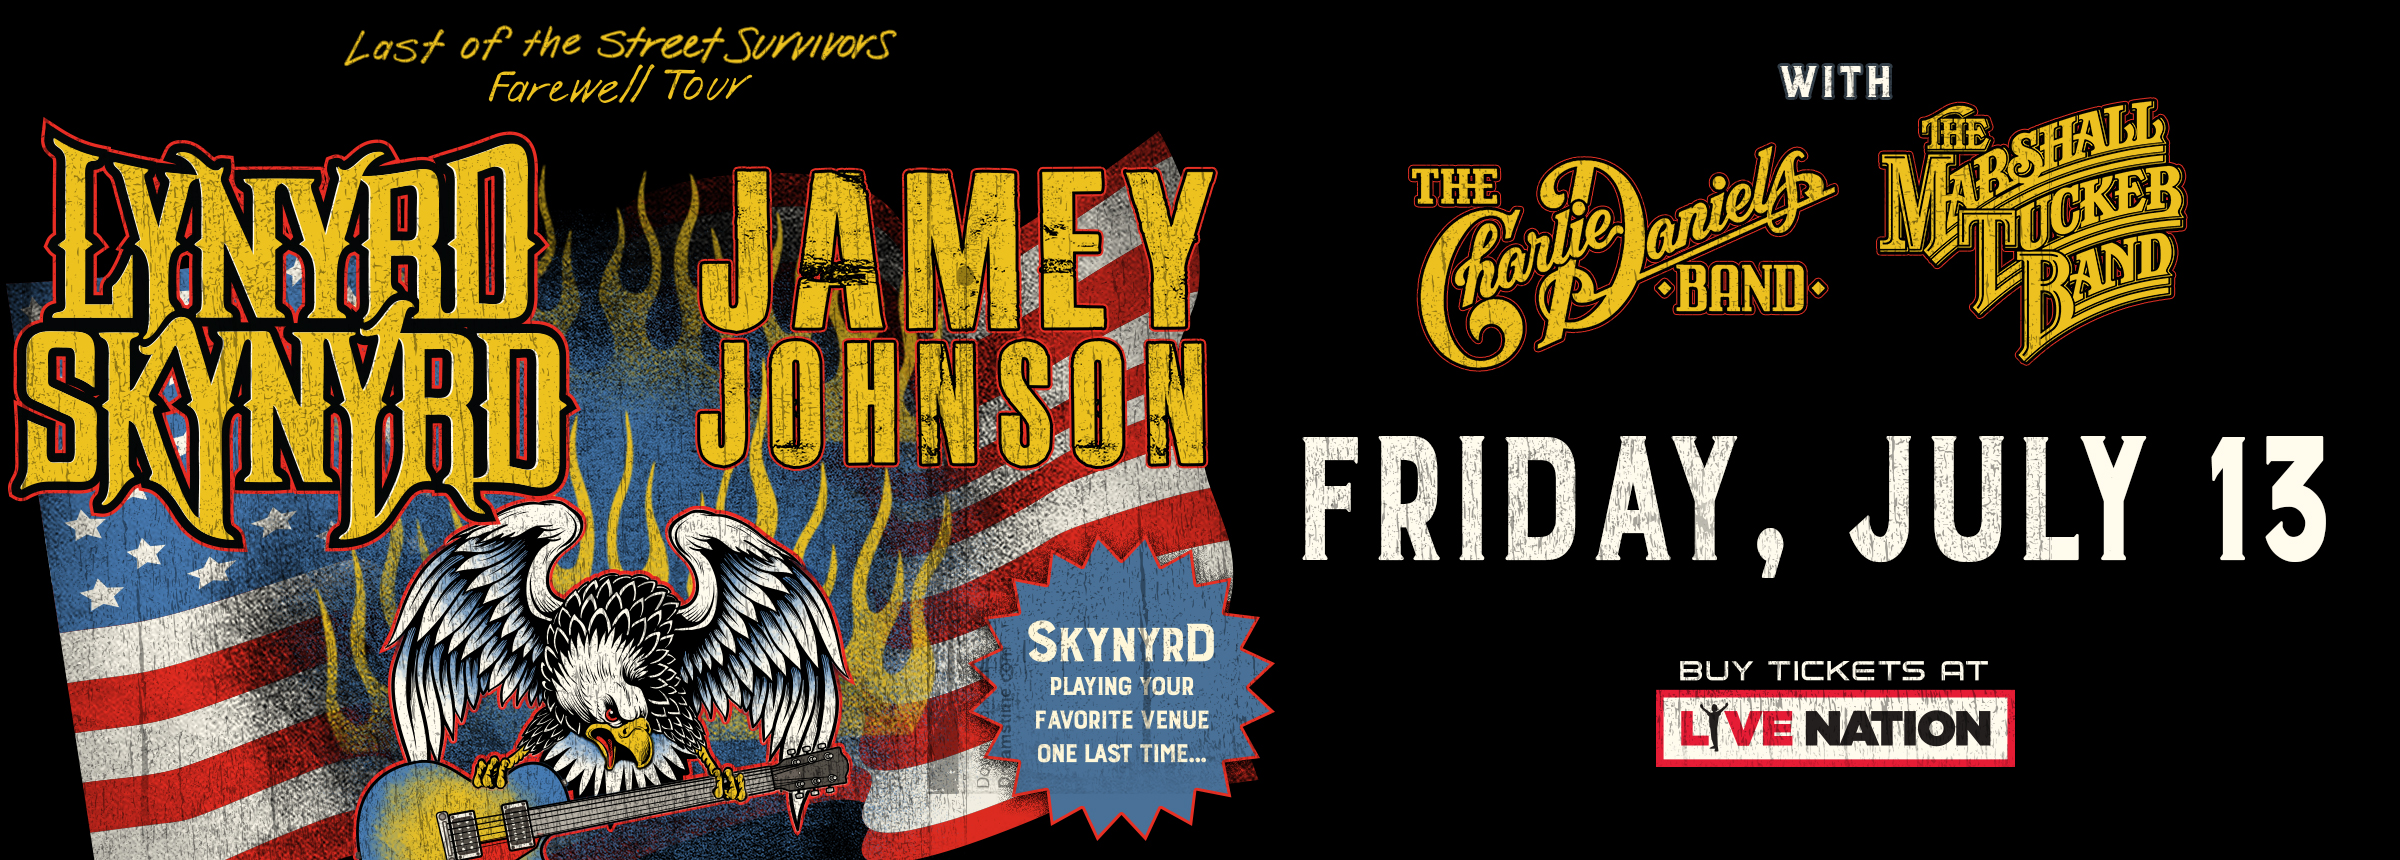 LIVE NATION SUMMER CONCERT SERIES - TICKET GIVEAWAY - LYNYRD